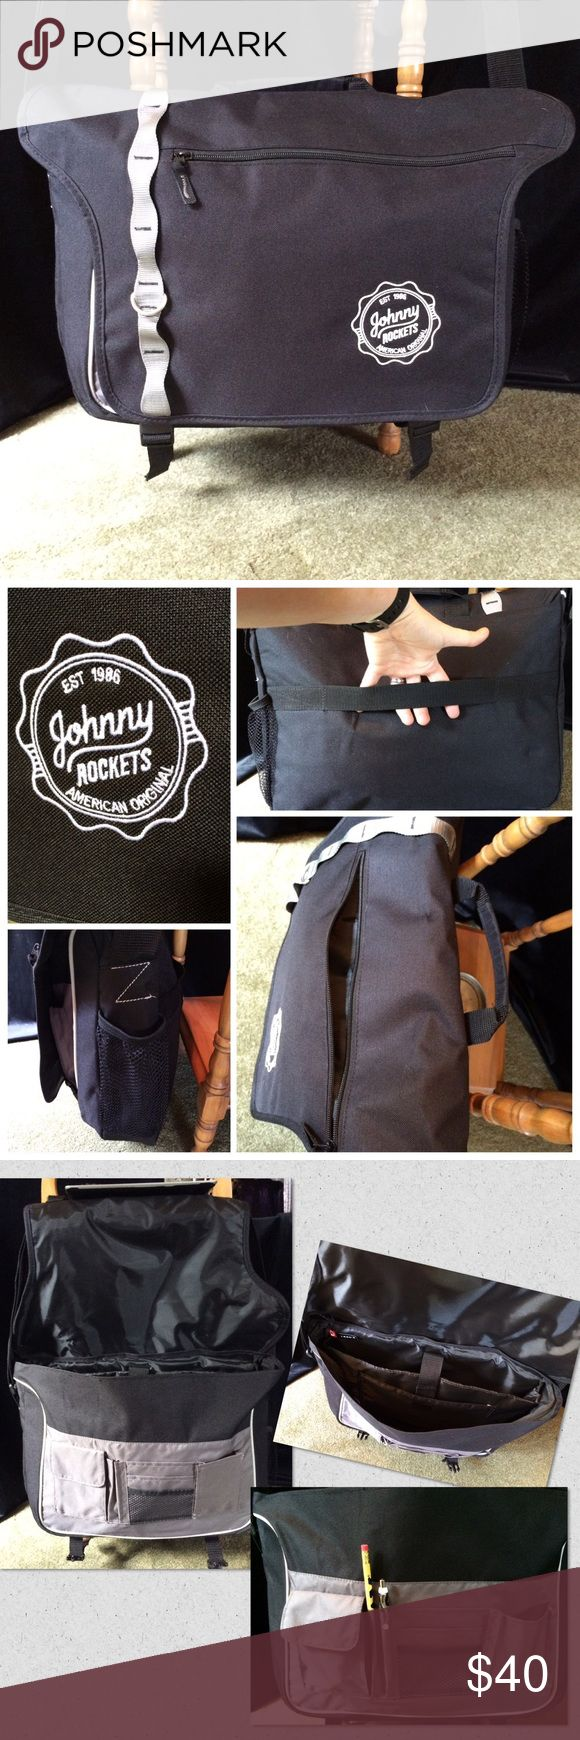 The rocket pizza food truck grits grids - Messenger Bag Johnny Rockets Messenger Bag Johnny Rockets This Is A Phenomenal